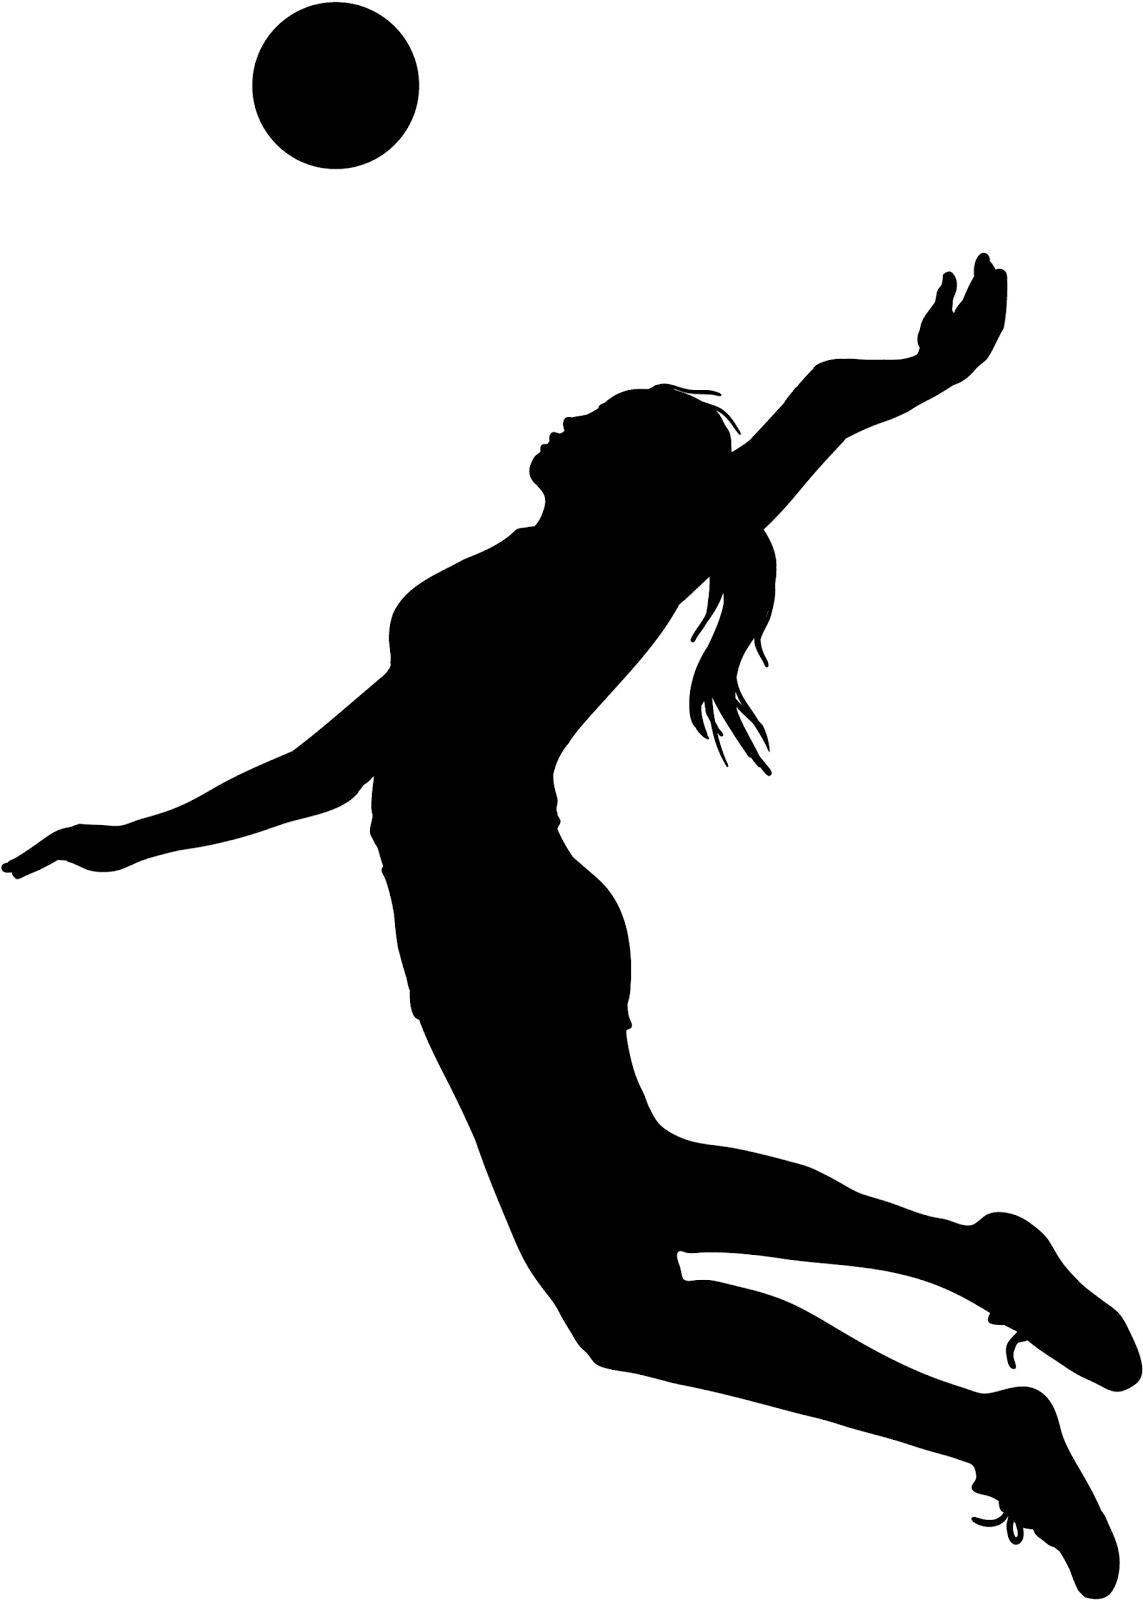 Volleyball clipart volleyball hitter. Silhouette at getdrawings com